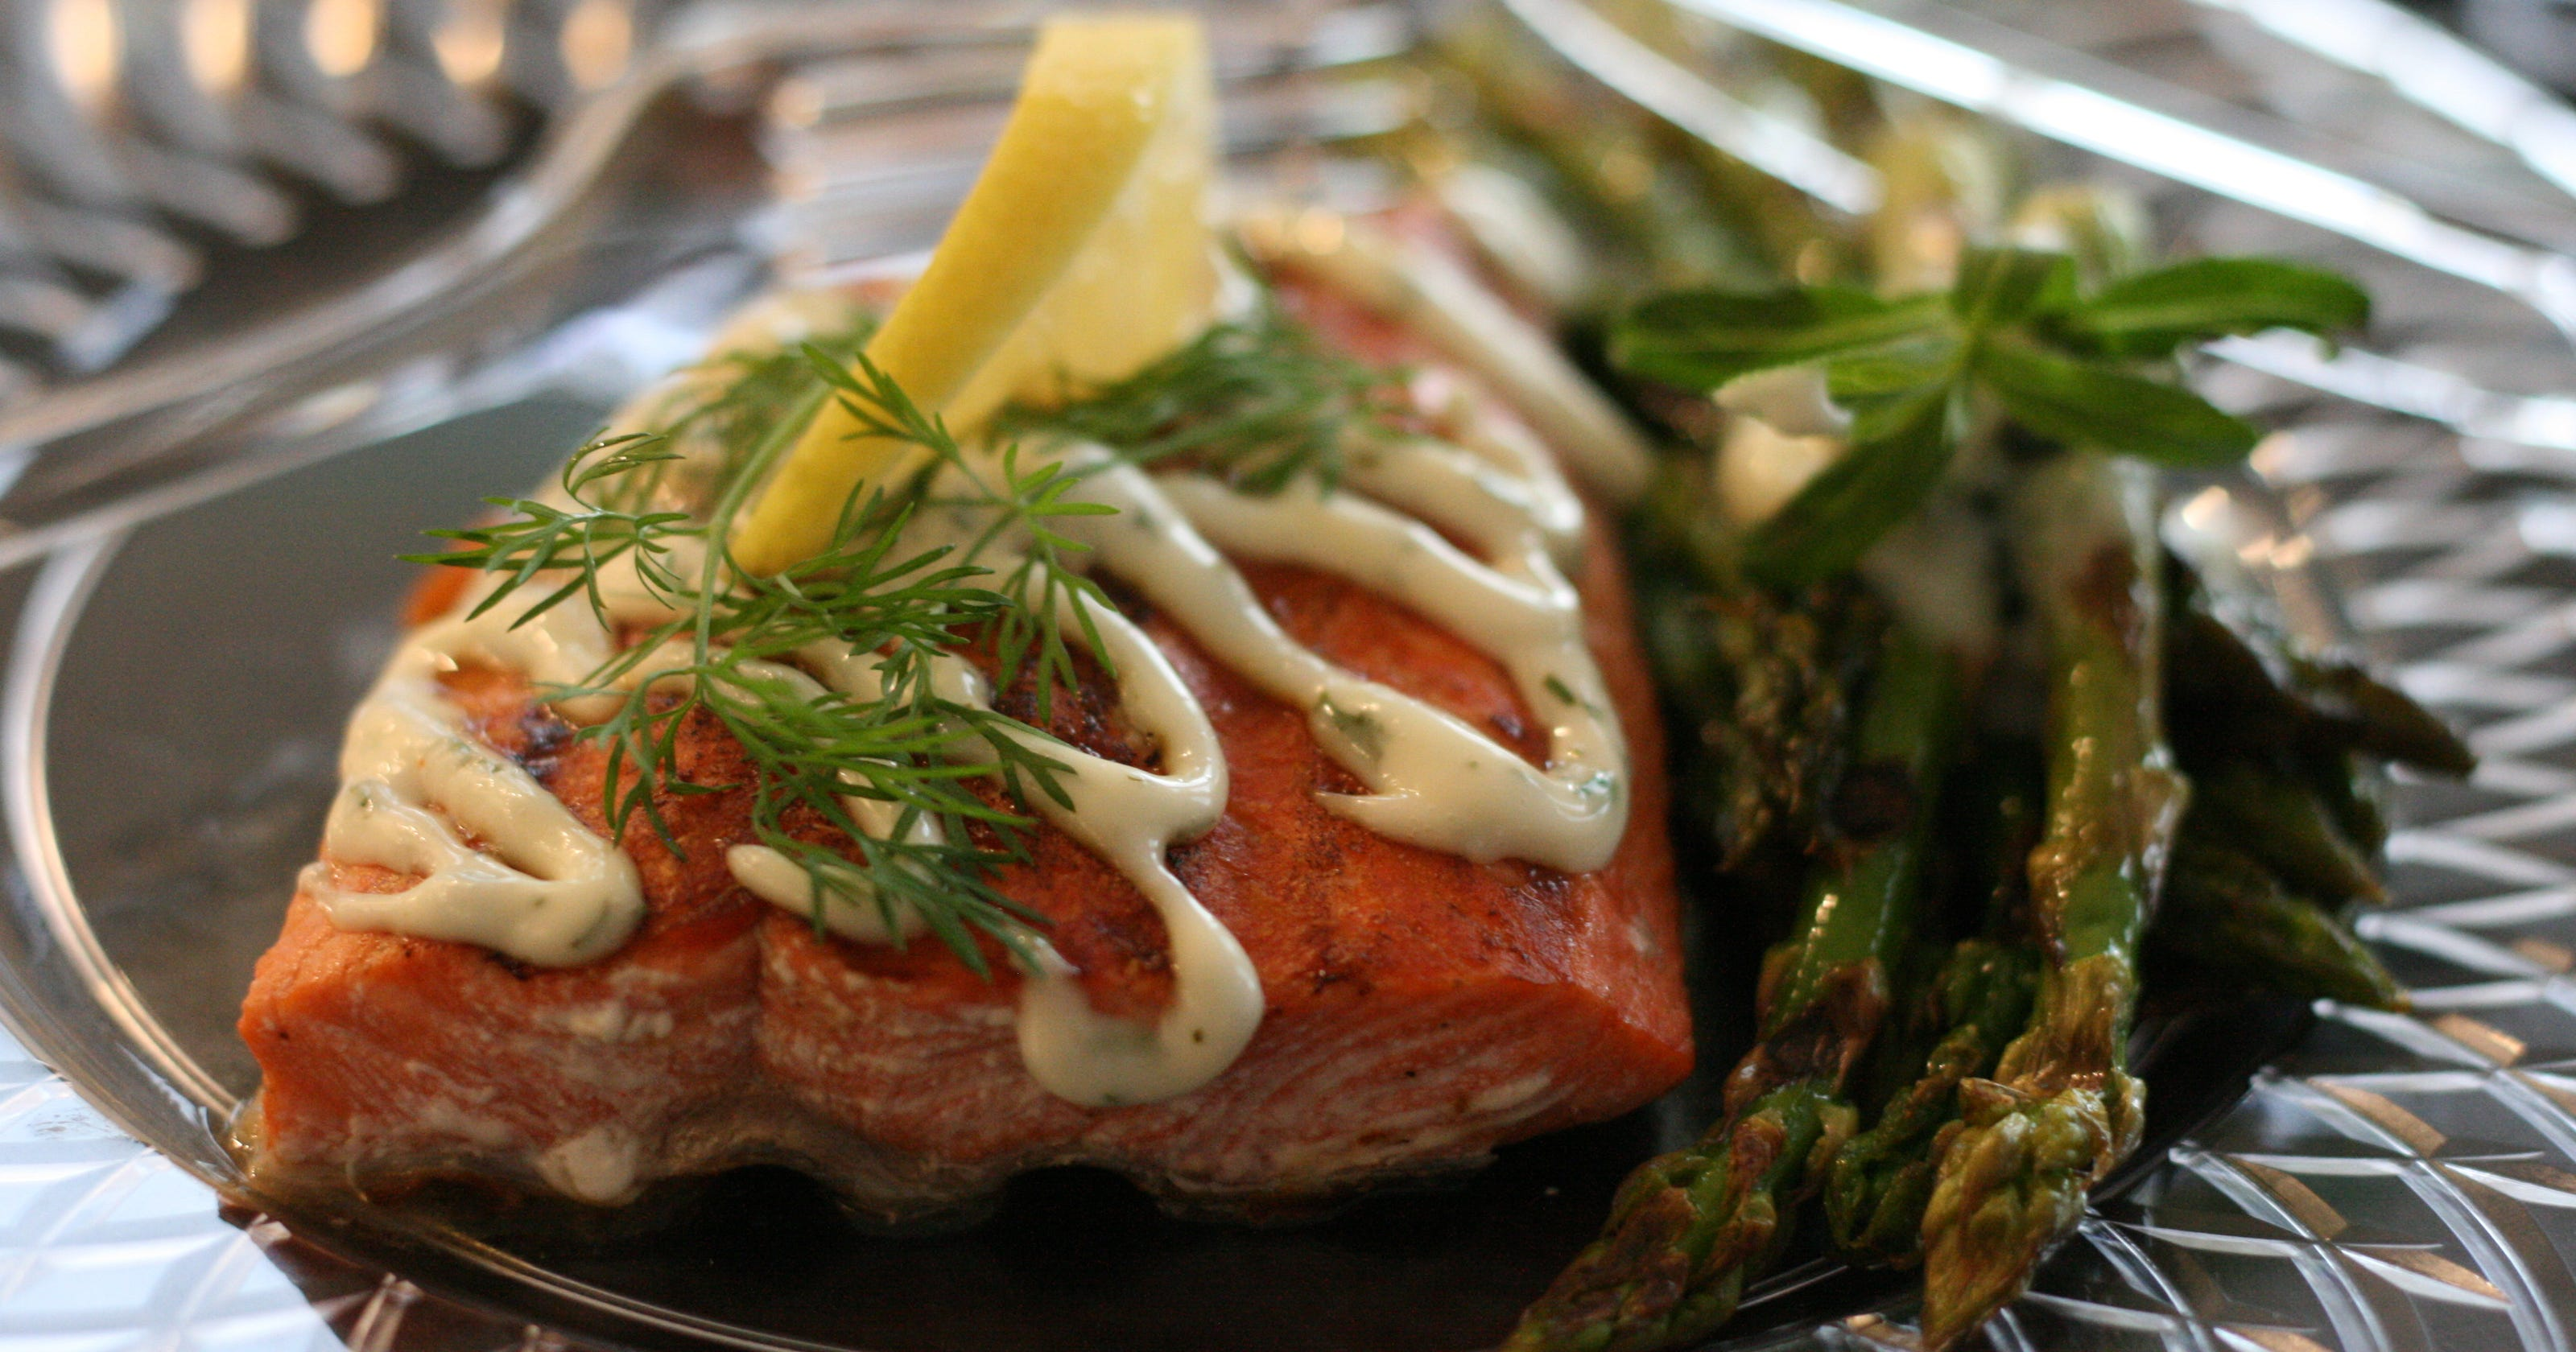 Grill up tasty salmon with help from george foreman